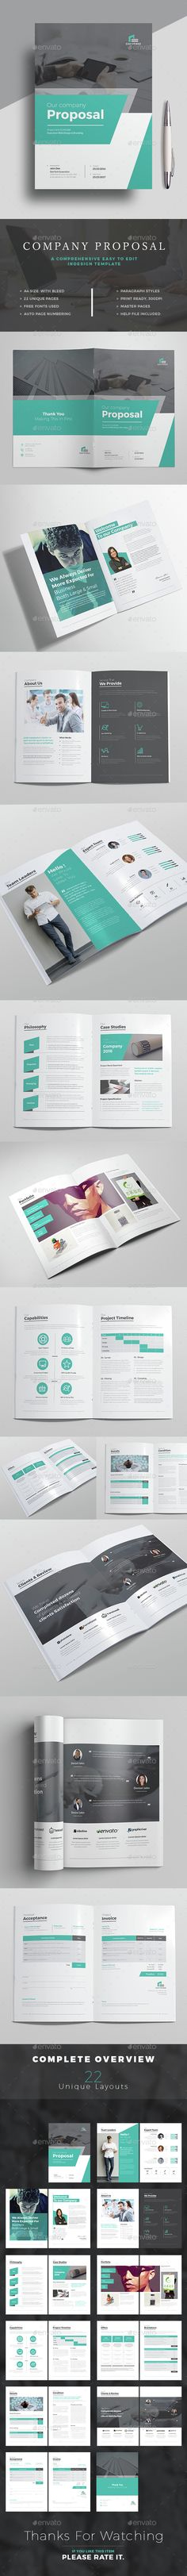 group proposal template%0A Road Map Of